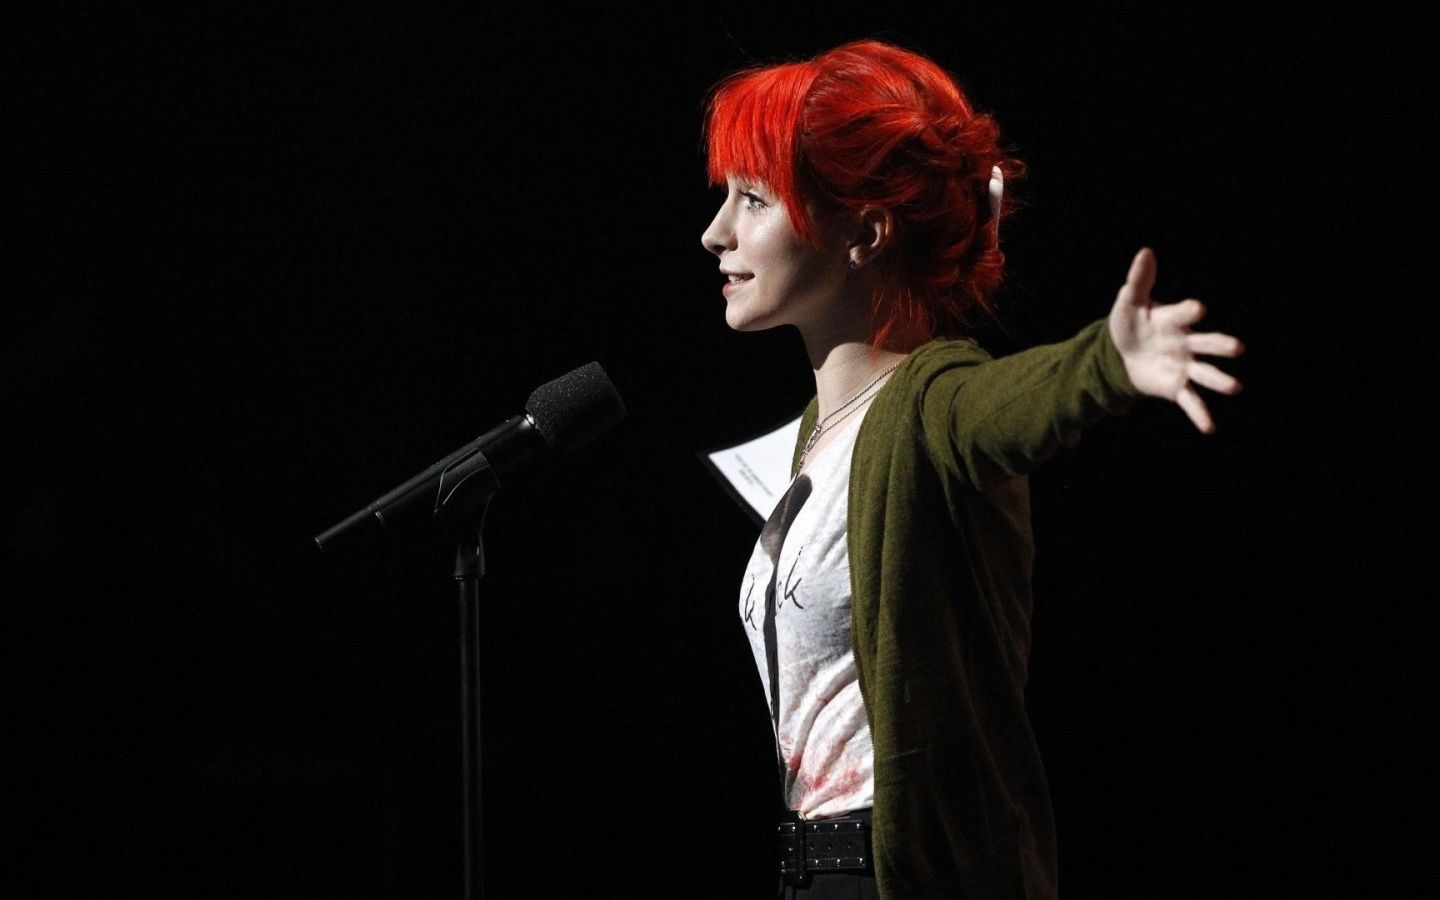 Hayley Williams wallpapers 1440x900